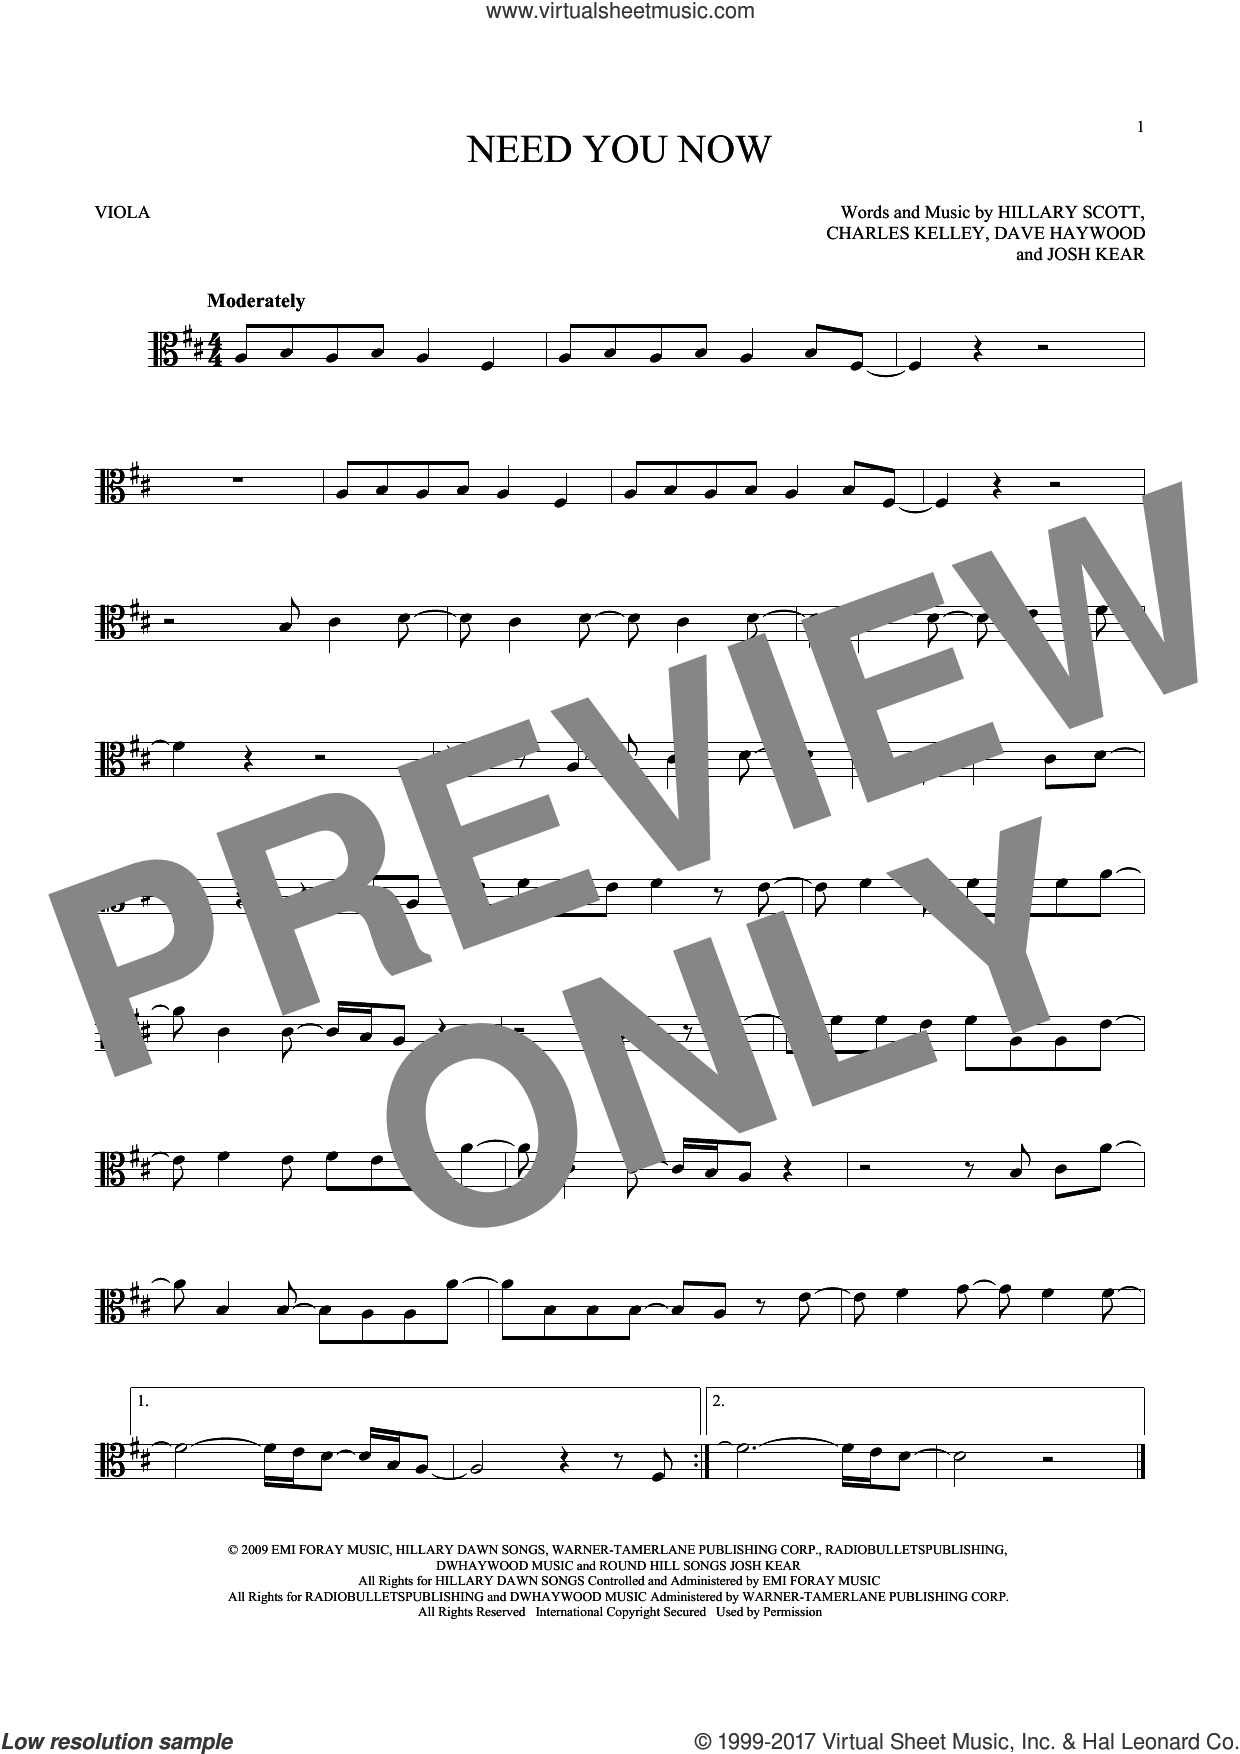 Need You Now sheet music for viola solo by Lady A, Lady Antebellum, Charles Kelley, Dave Haywood, Hillary Scott and Josh Kear, intermediate skill level